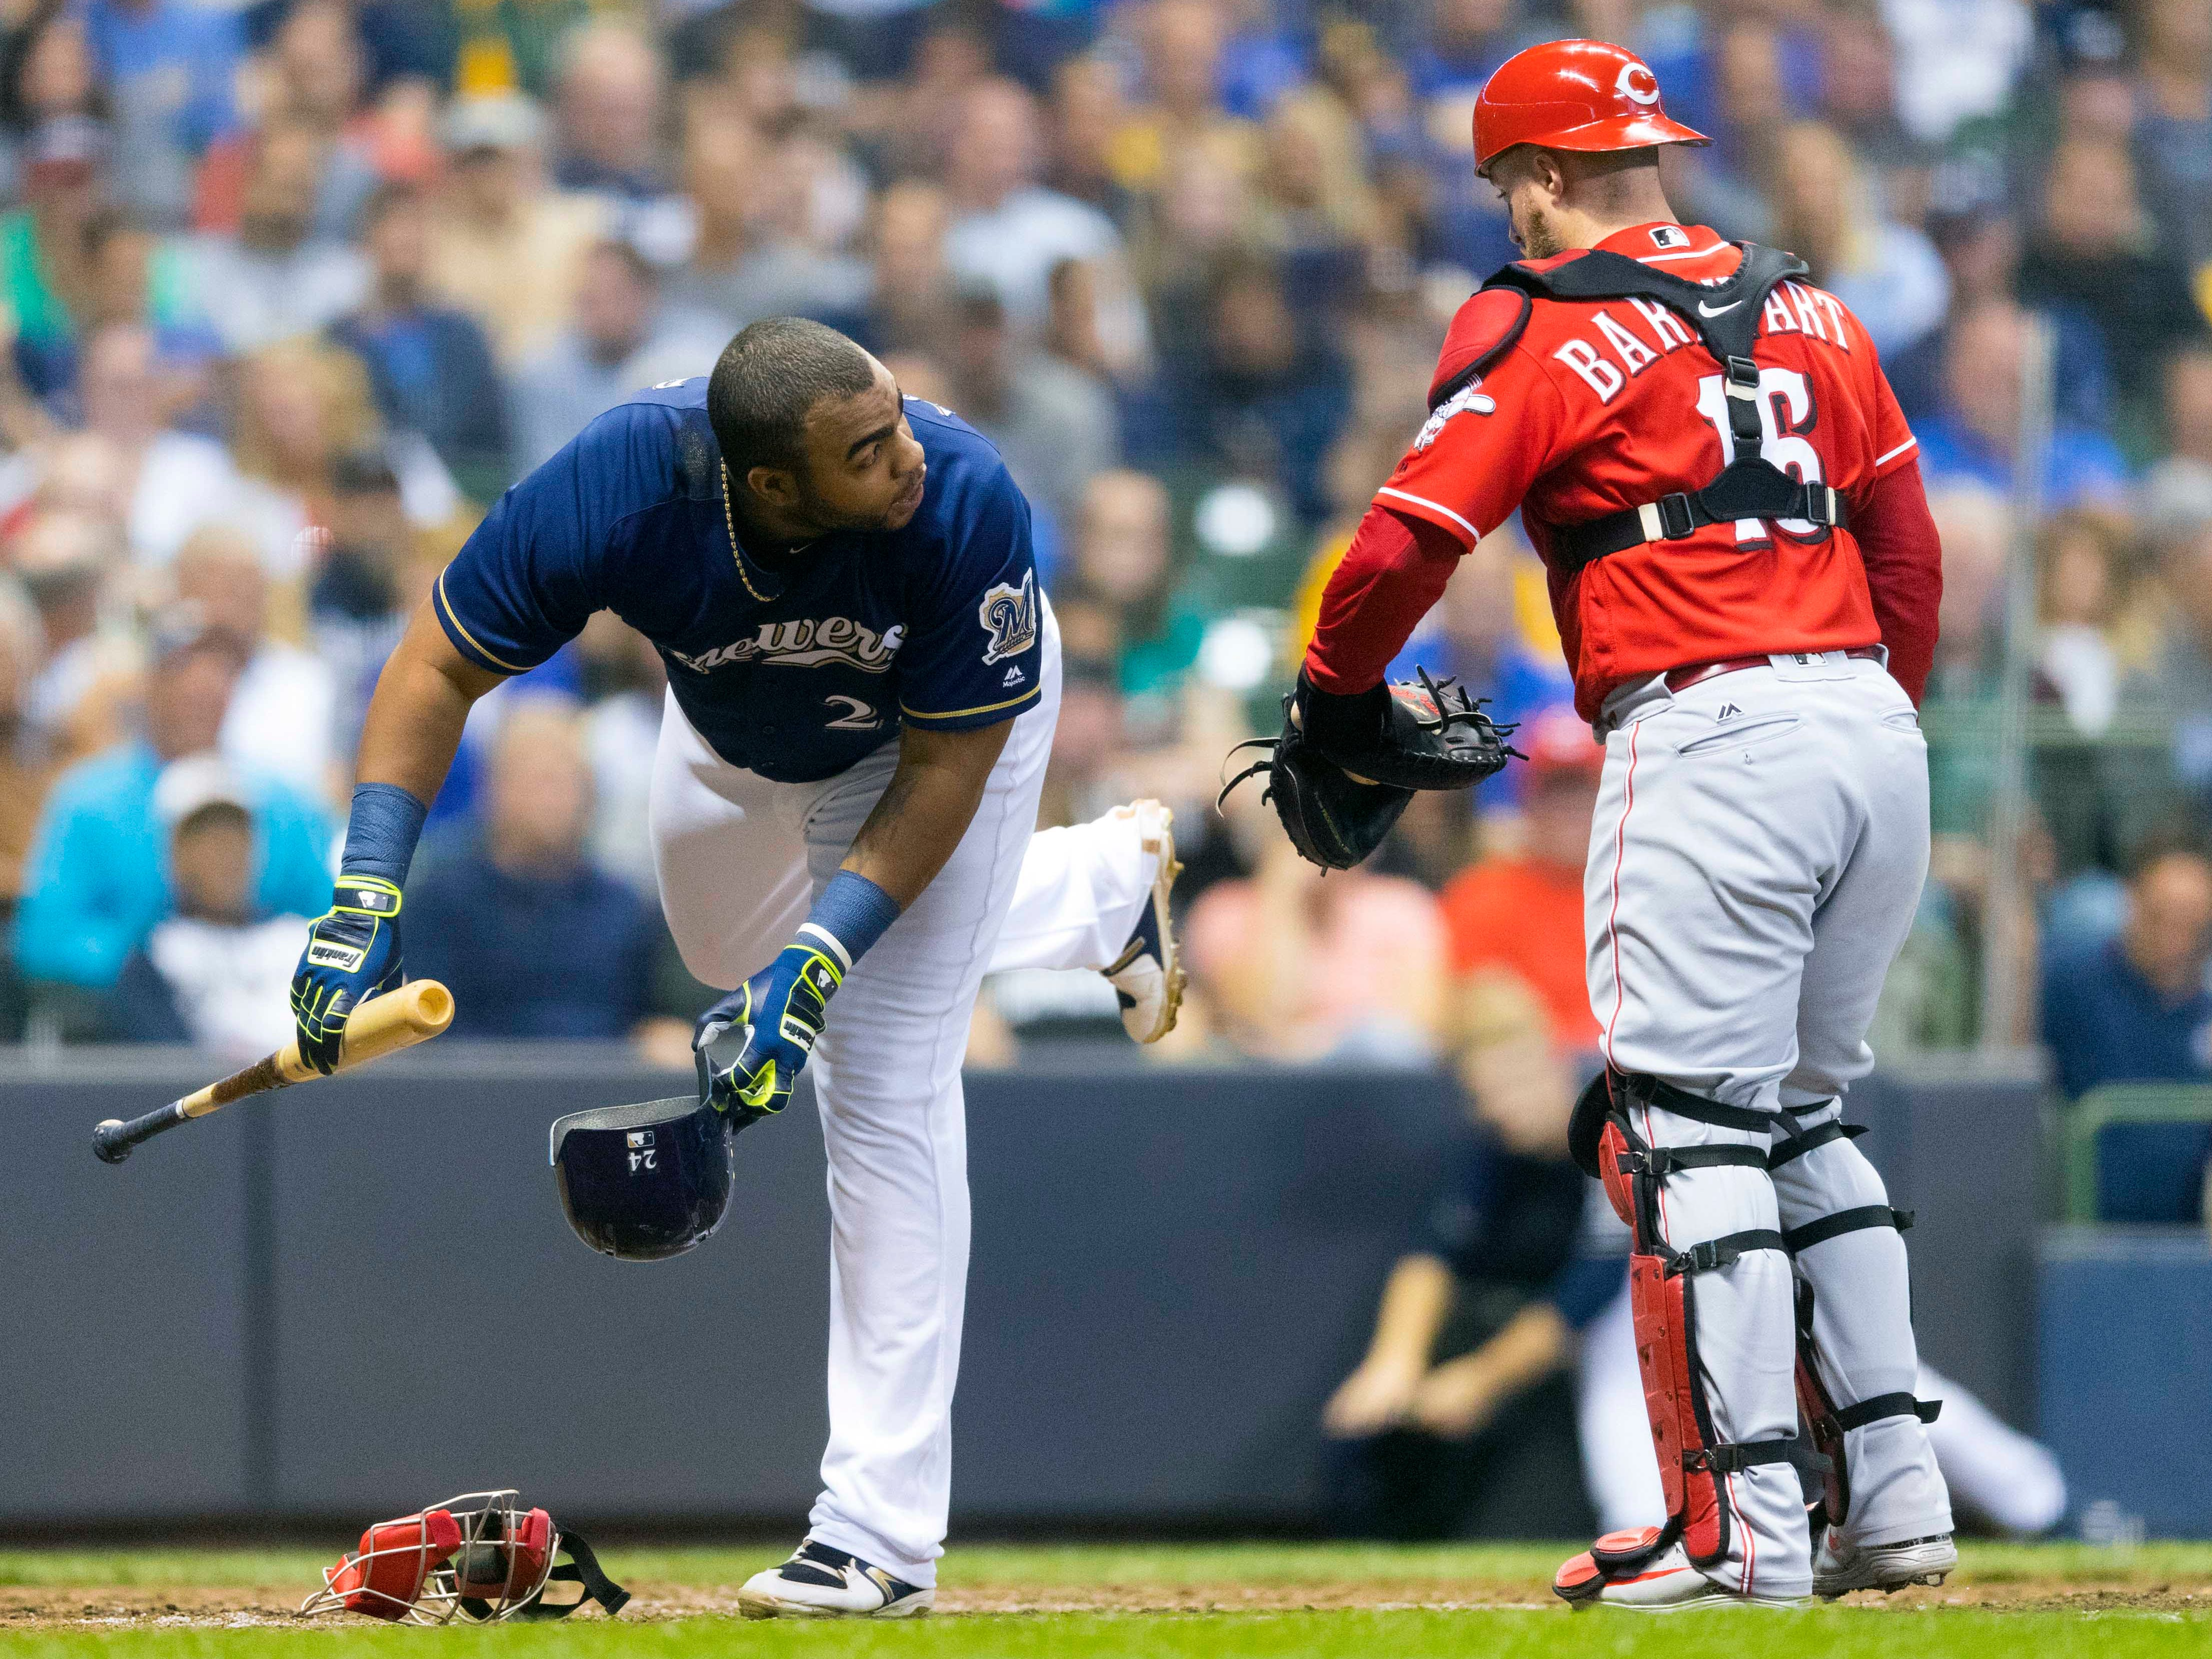 Jesus Aguilar of the Brewers puts his bat and helmet on the ground for the bat boy to collect after striking out against the Reds to end the fifth inning Wednesday night.